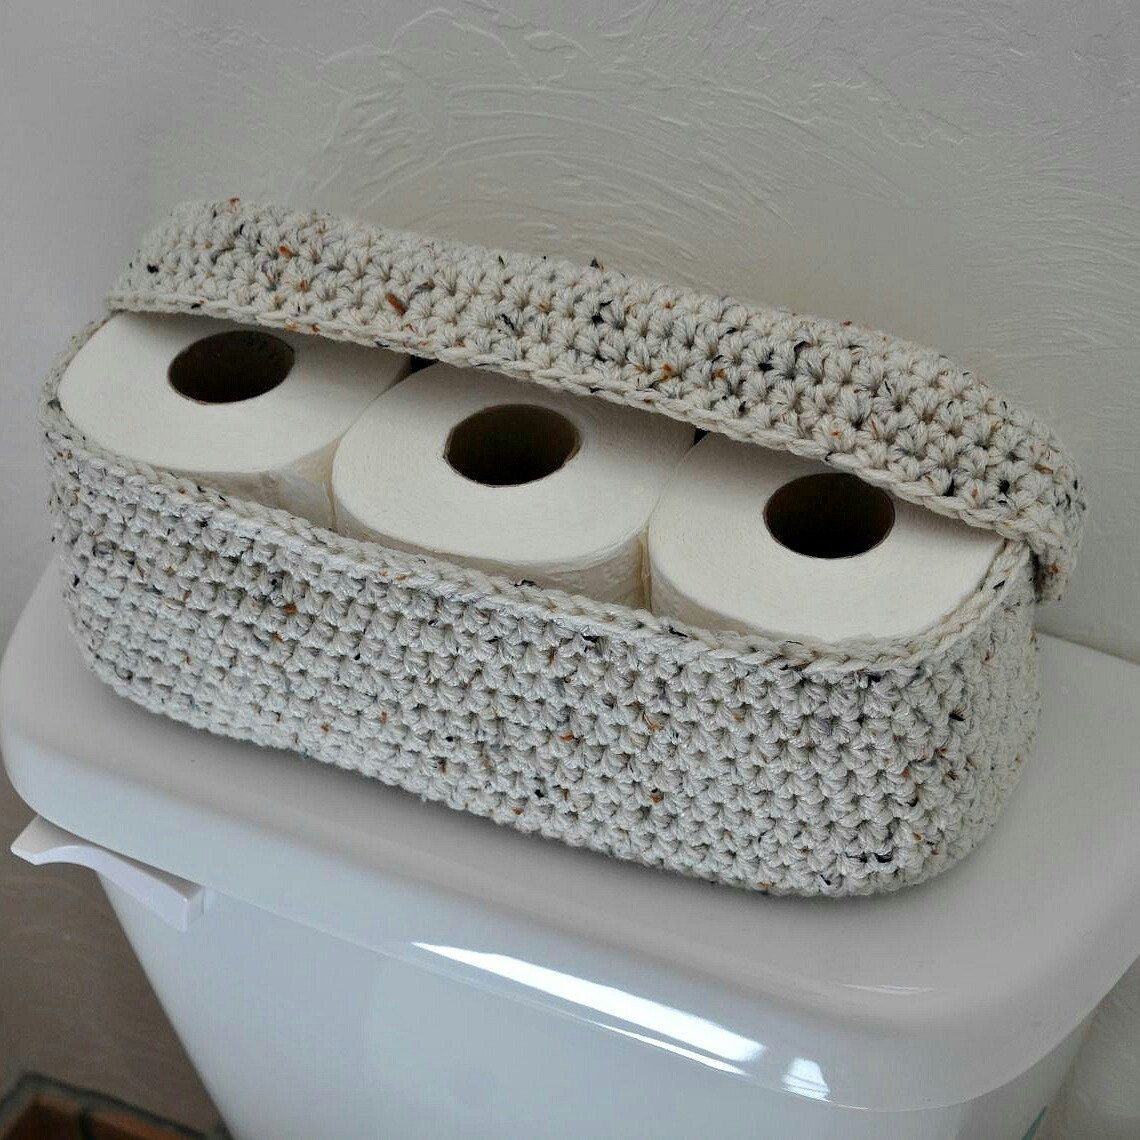 Aufbewahrungskorb Bad Spare Roll Holder Toilet Tissue Basket Bathroom Decoration Home